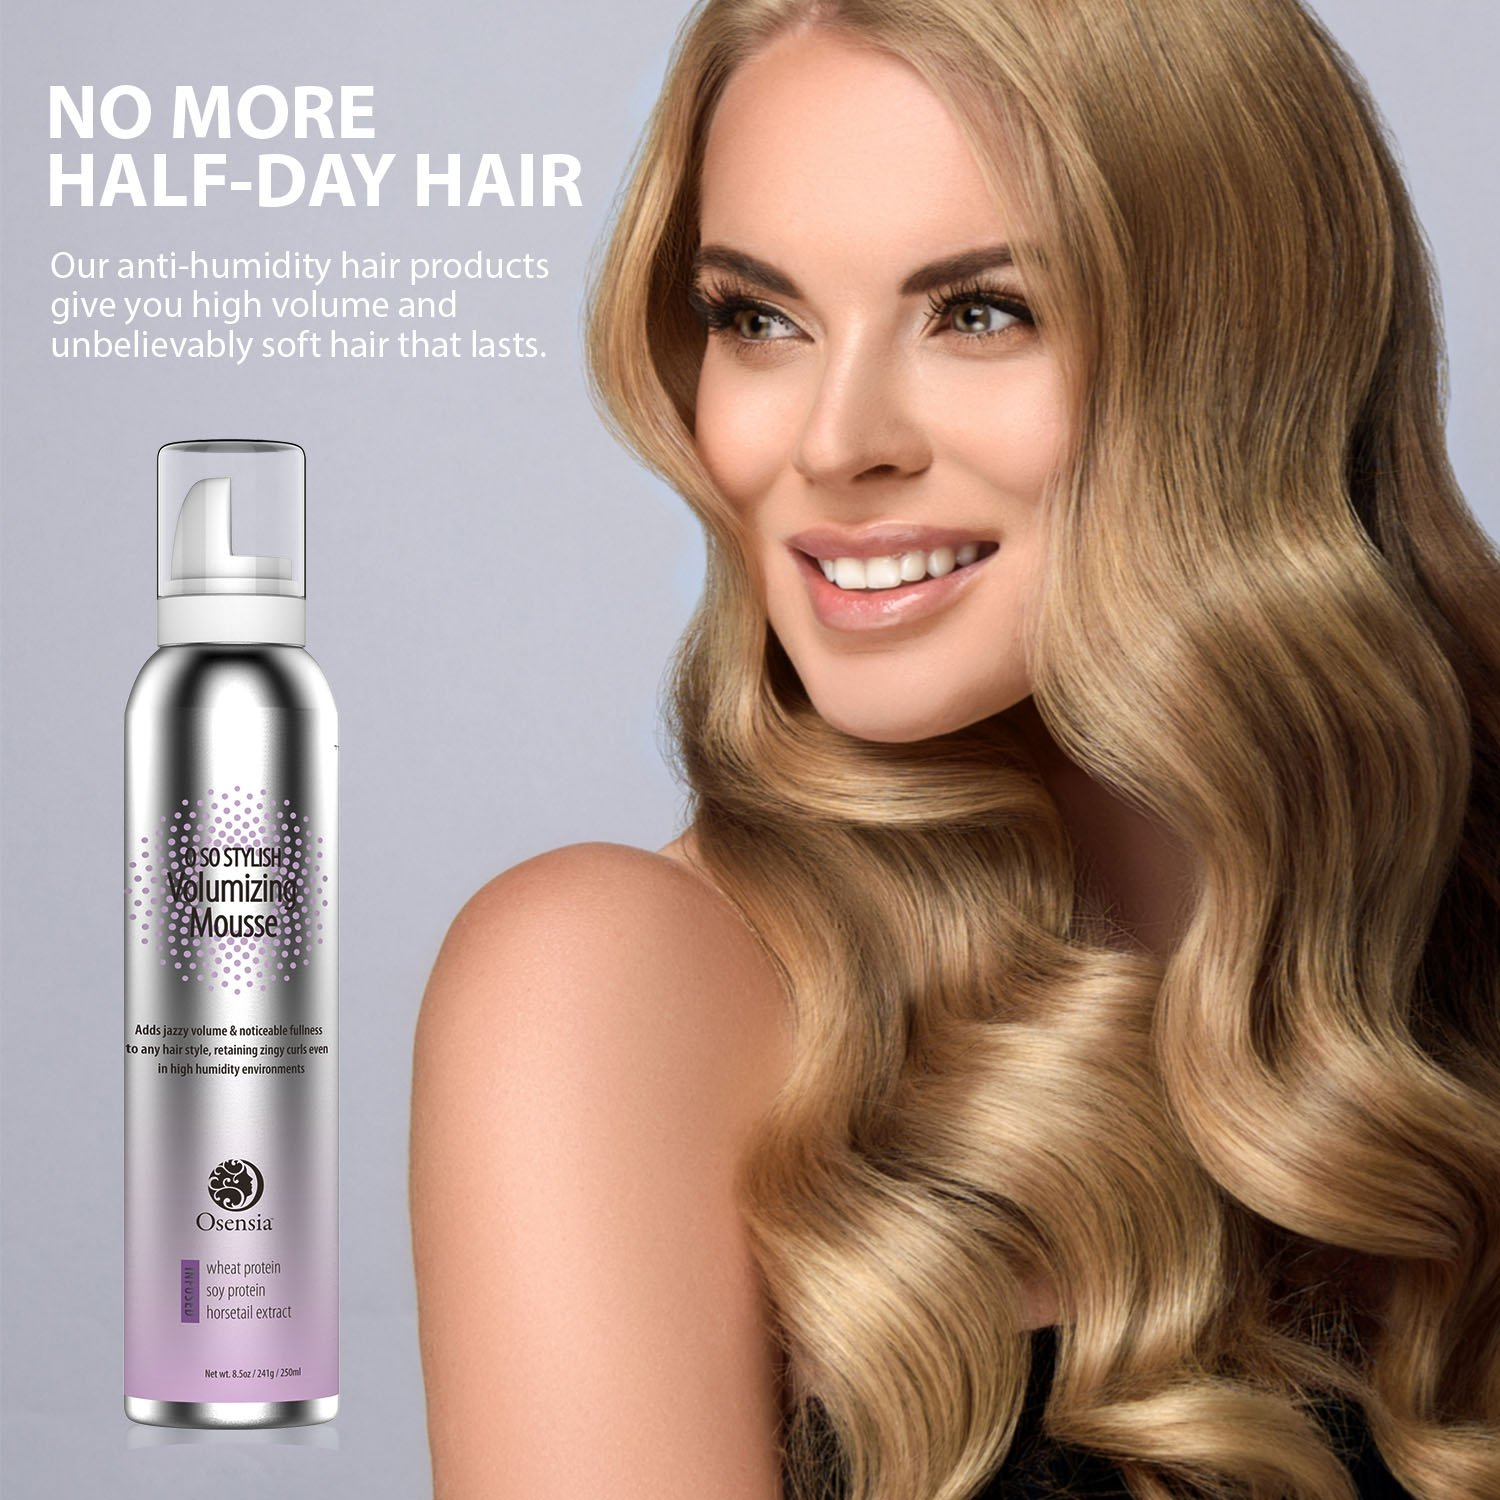 Major Volume Mousse - Anti-Humidity, Strong Hold, Touchable Natural Mousse  Hair Foam - Color